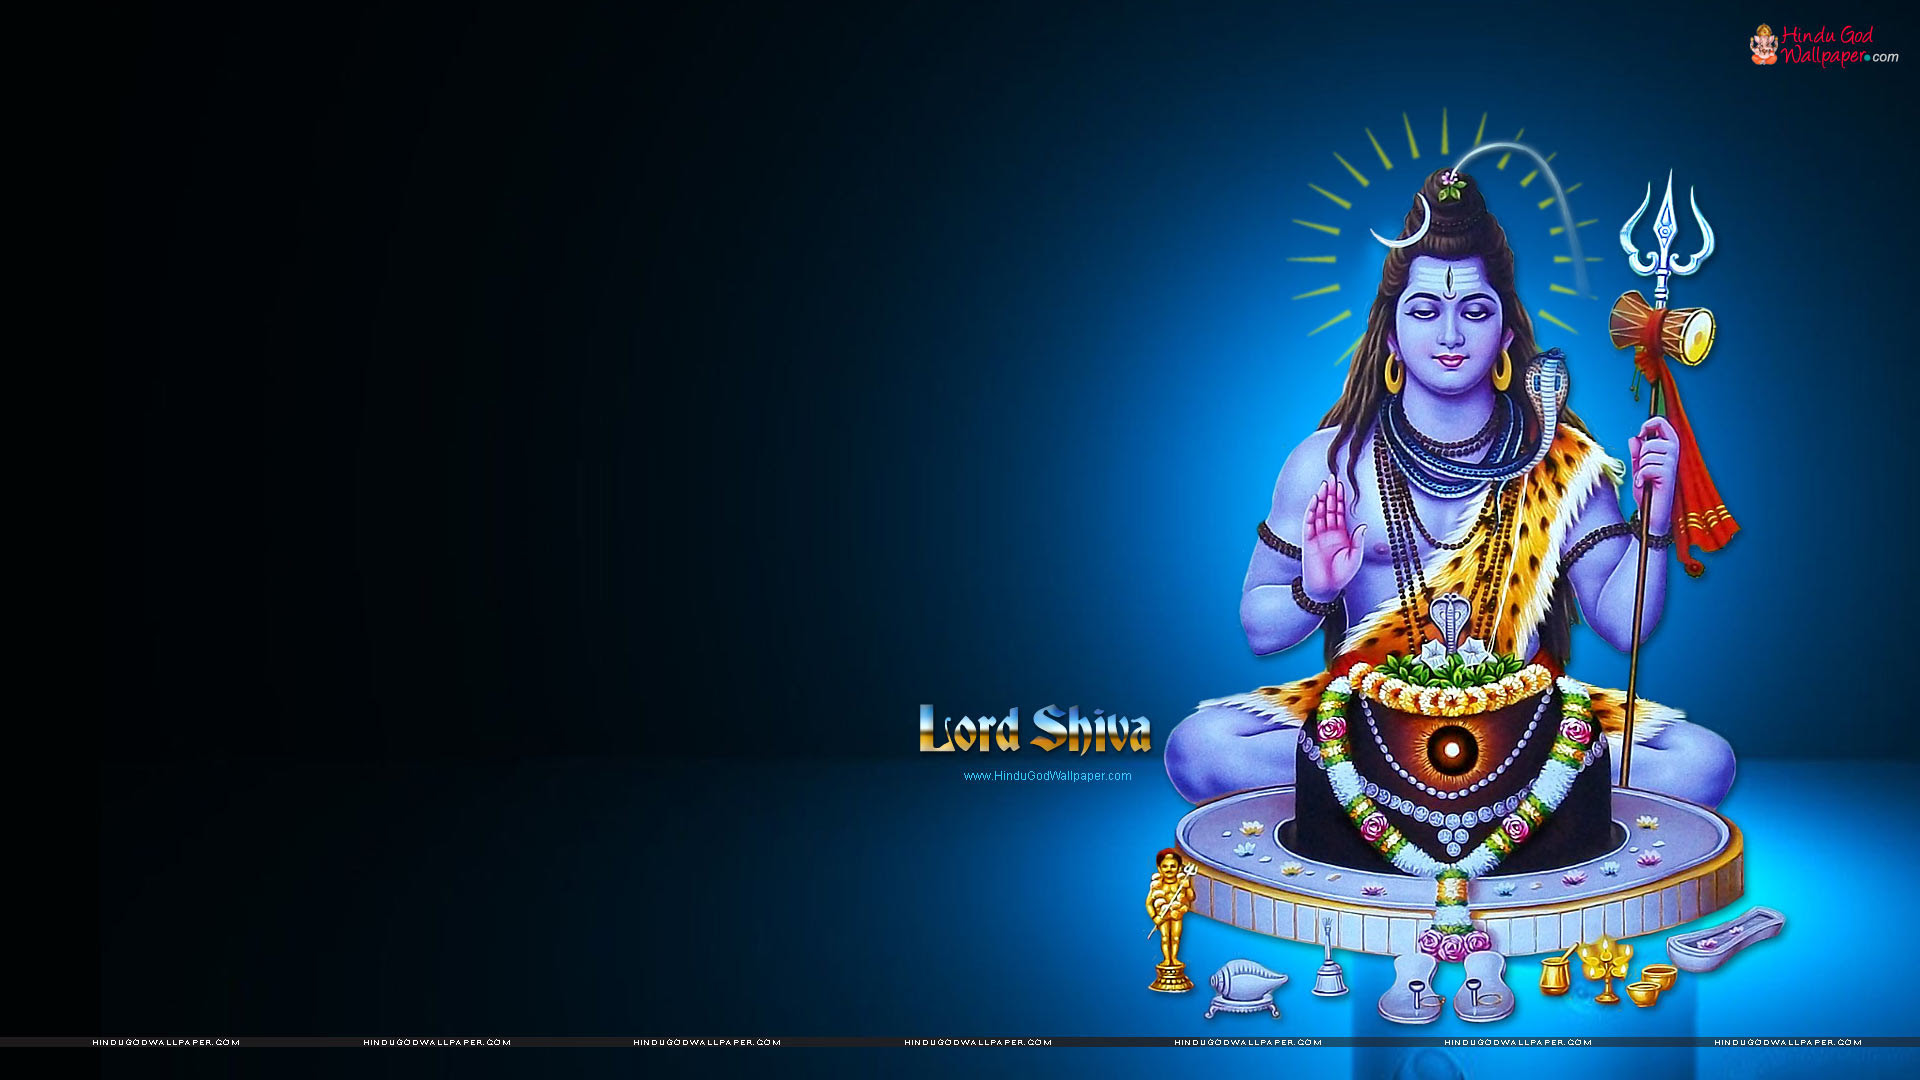 40+ Most Popular High Quality Hindu God Hd Wallpaper For Laptop